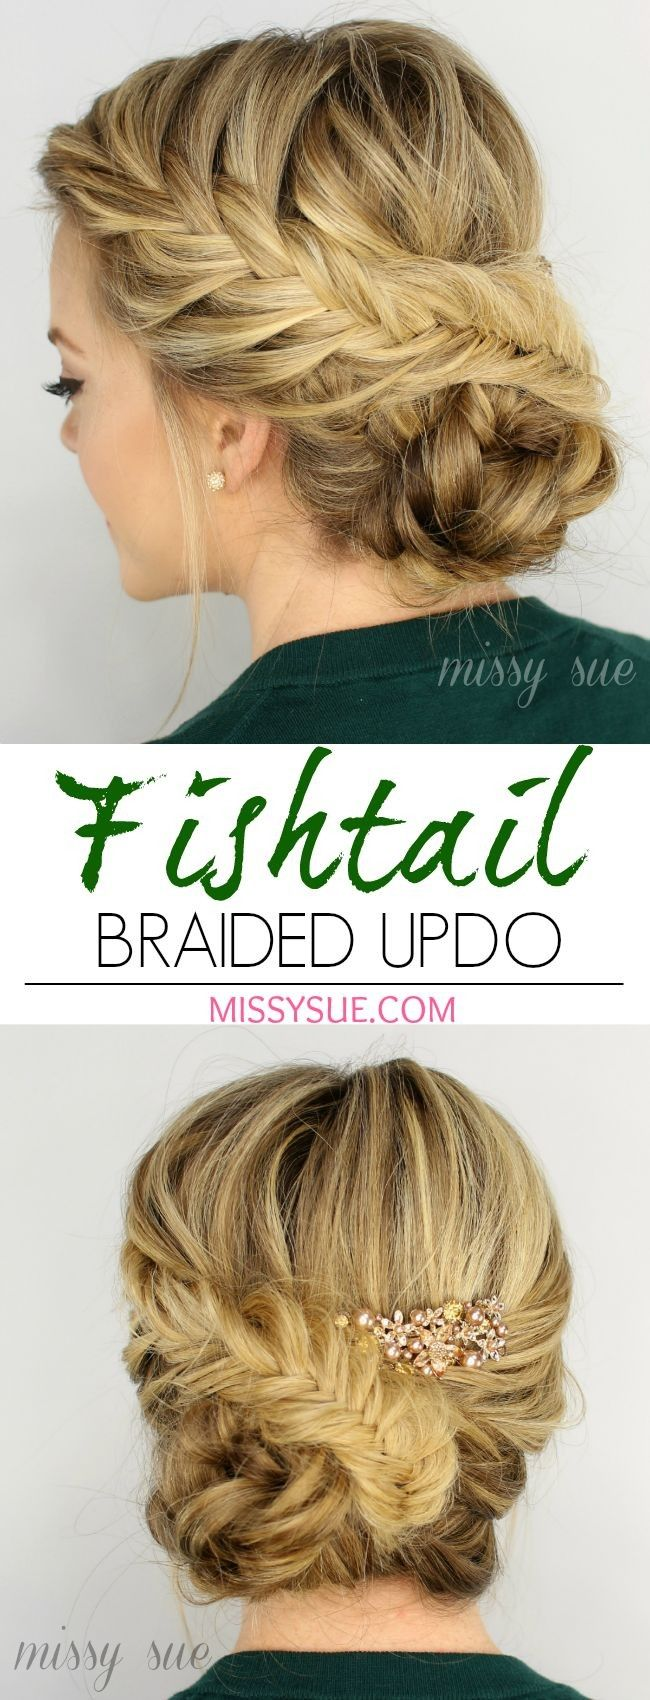 Inspirational Easy Updo Frisuren für mittellanges lockiges Haar